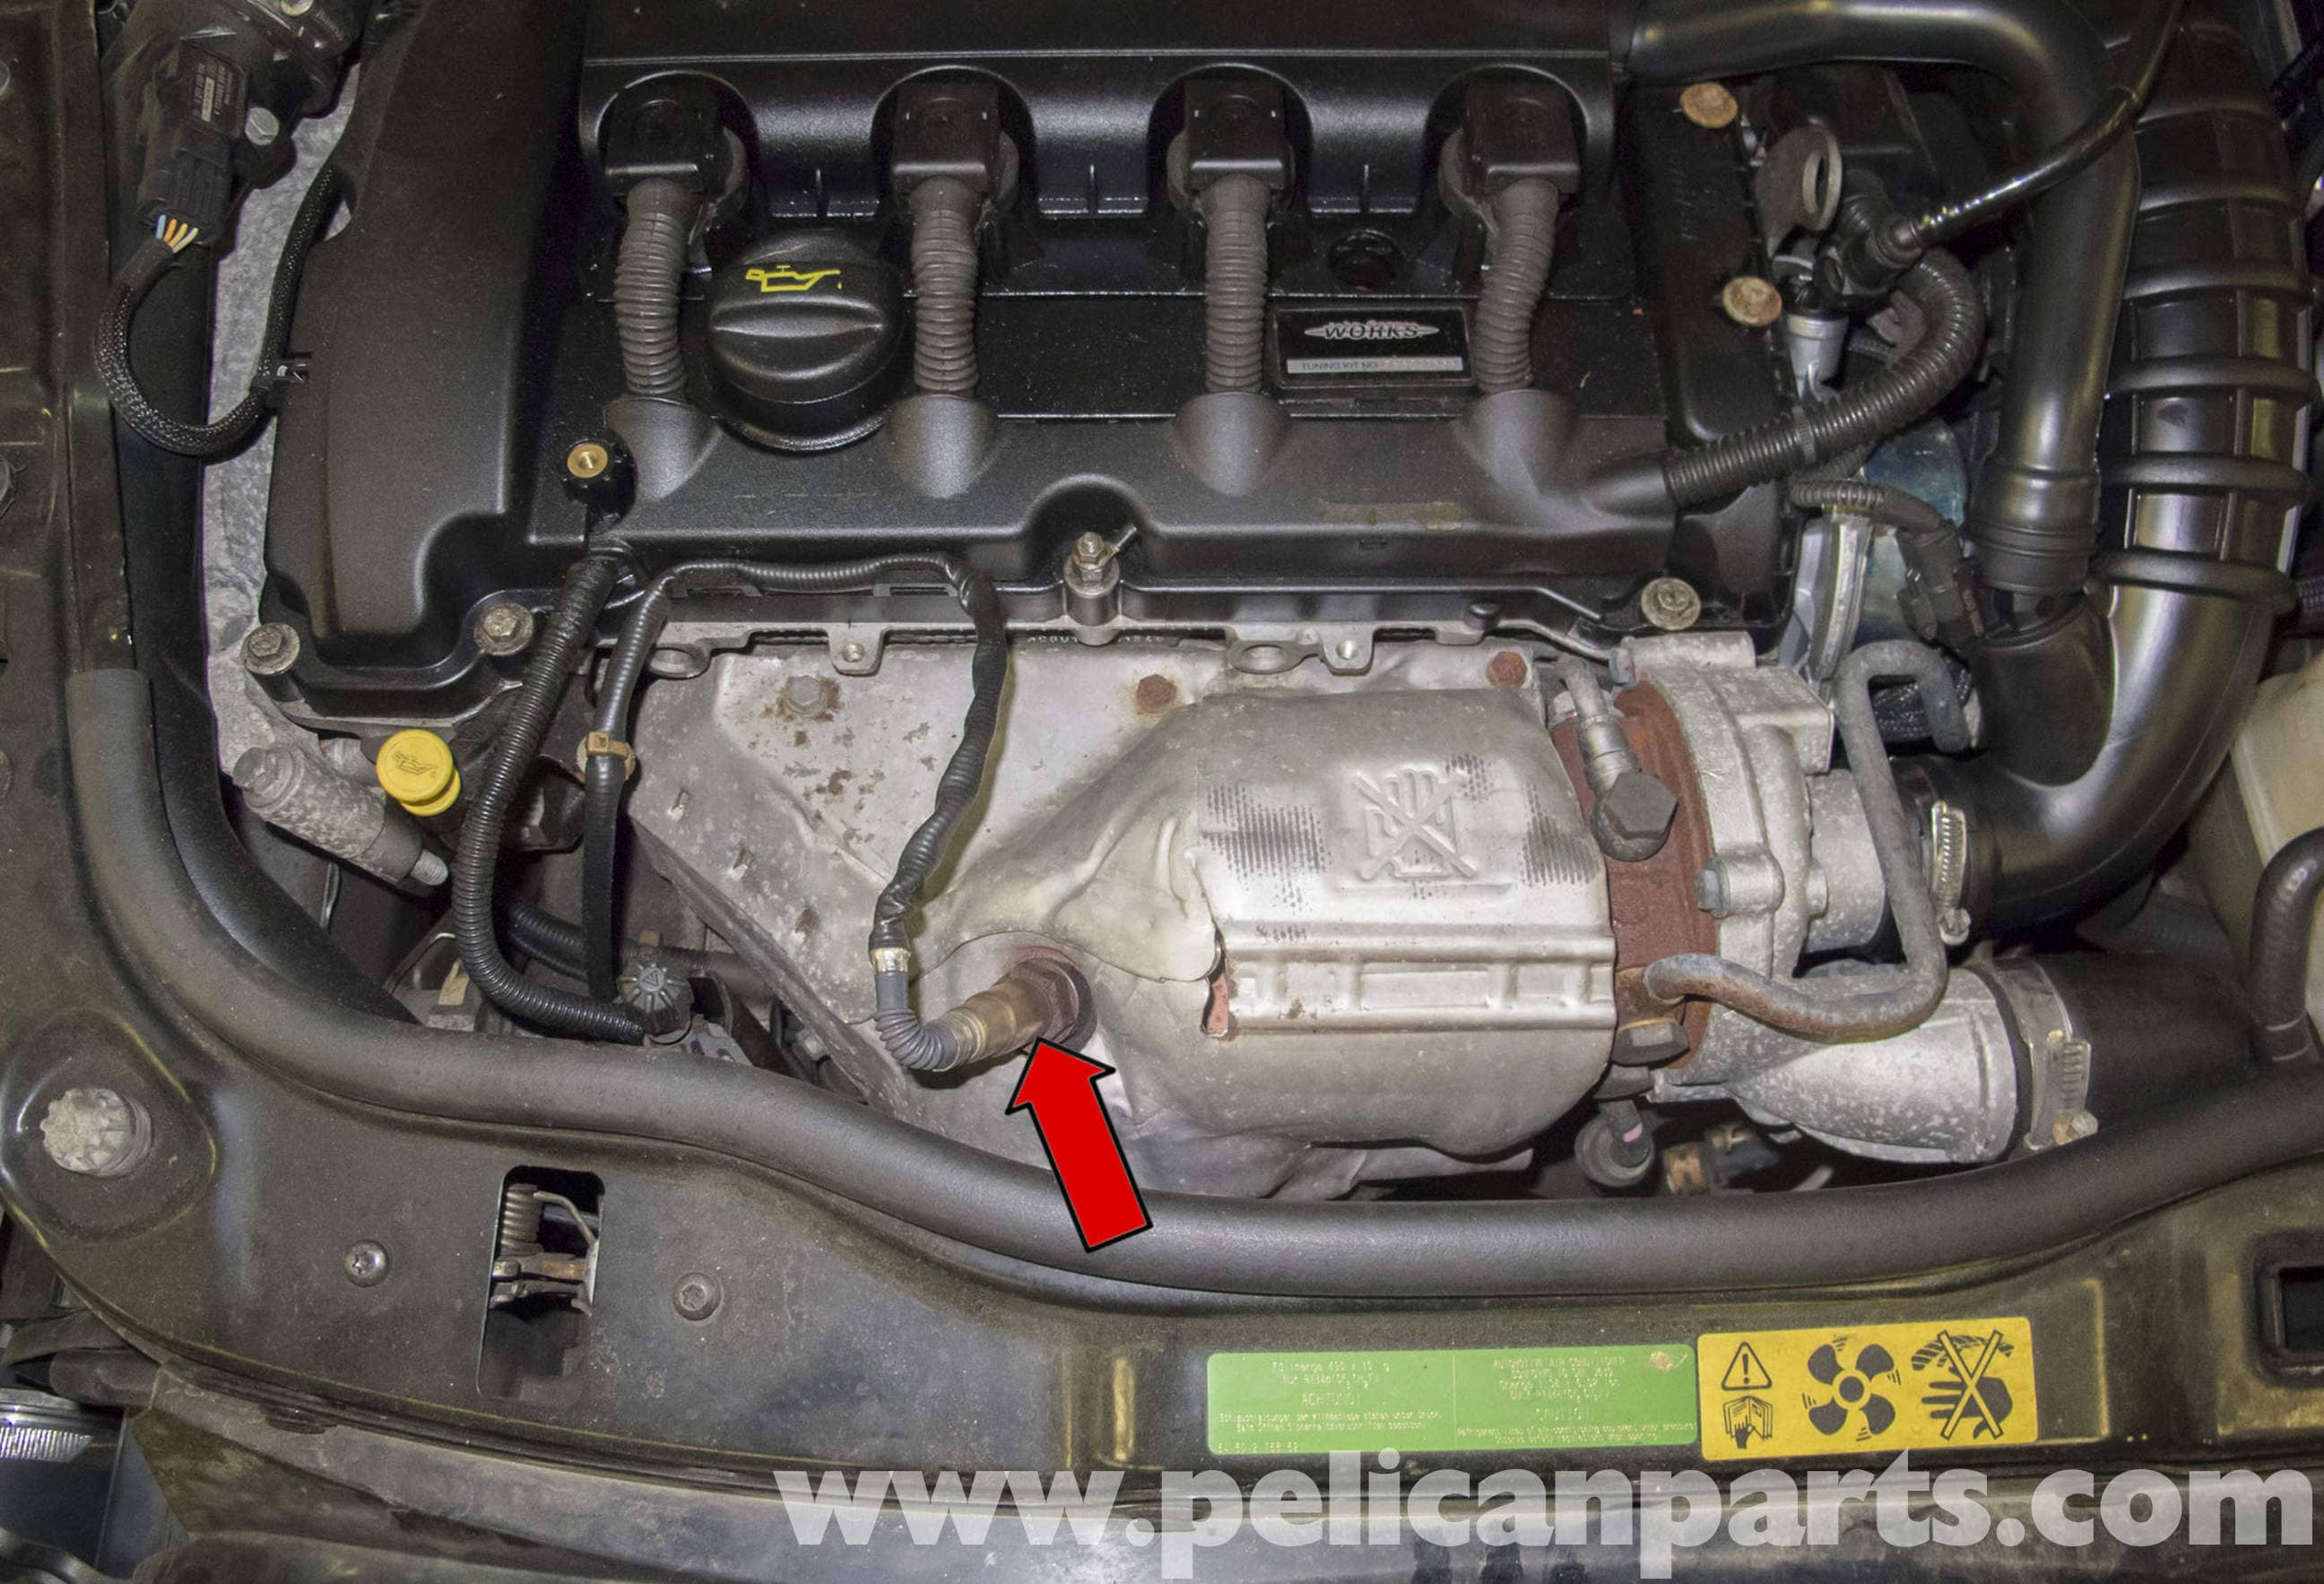 2009 Mini Cooper S Fuse Diagram Detailed Wiring Diagrams R56 Box Electrical Head Gasket 2007